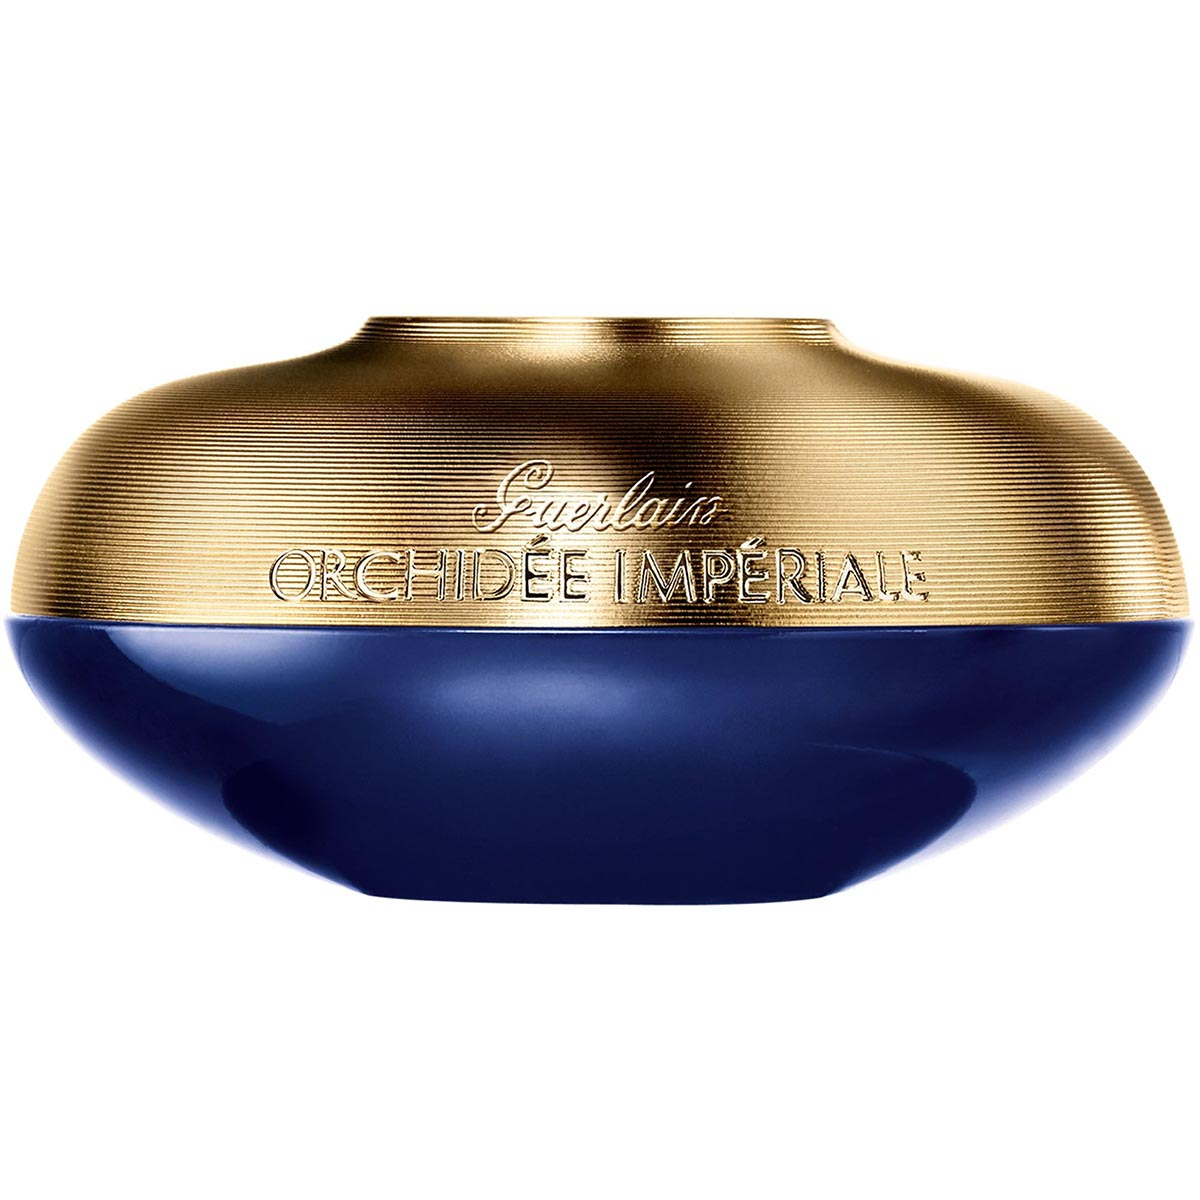 Guerlain orchidee imperiale eye cream 15ml